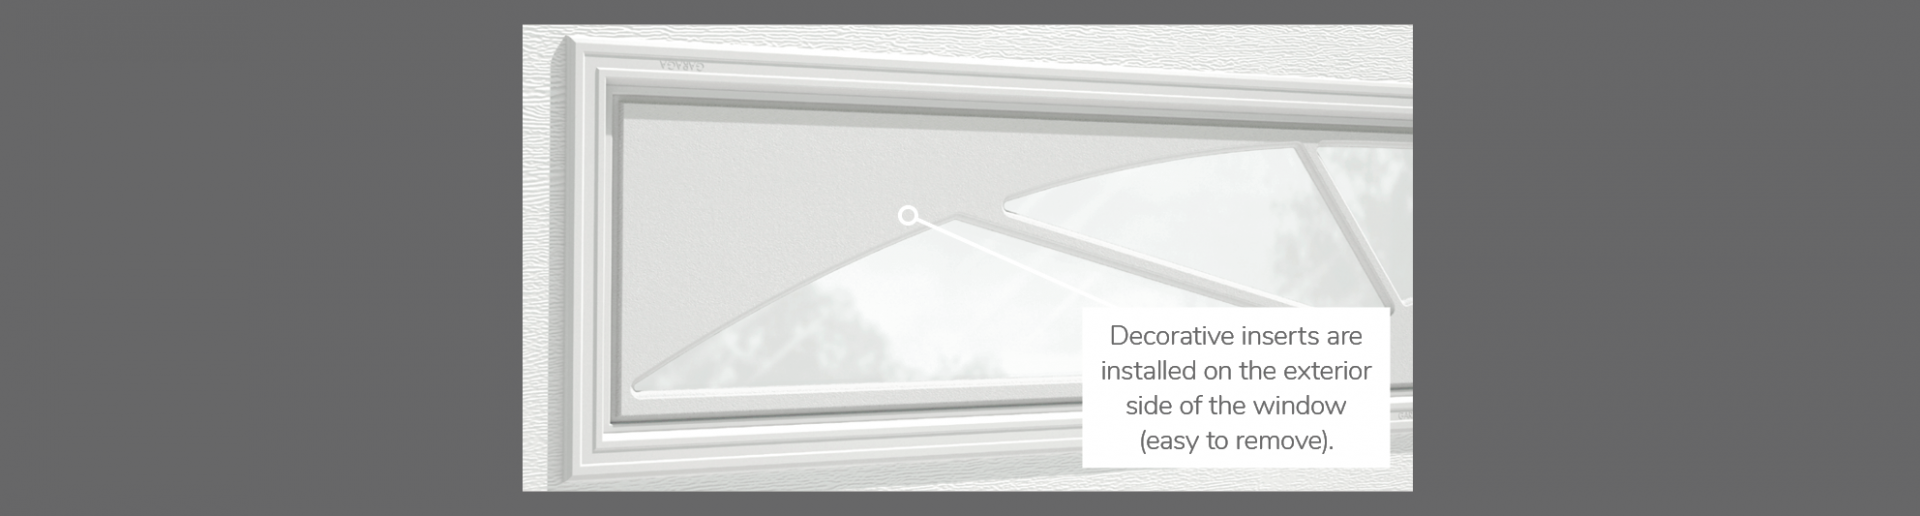 "Williamsburg Decorative Insert, 40"" x 13"", available for door R-16, R-12, 2 layers polystyrene and Non-insulated"